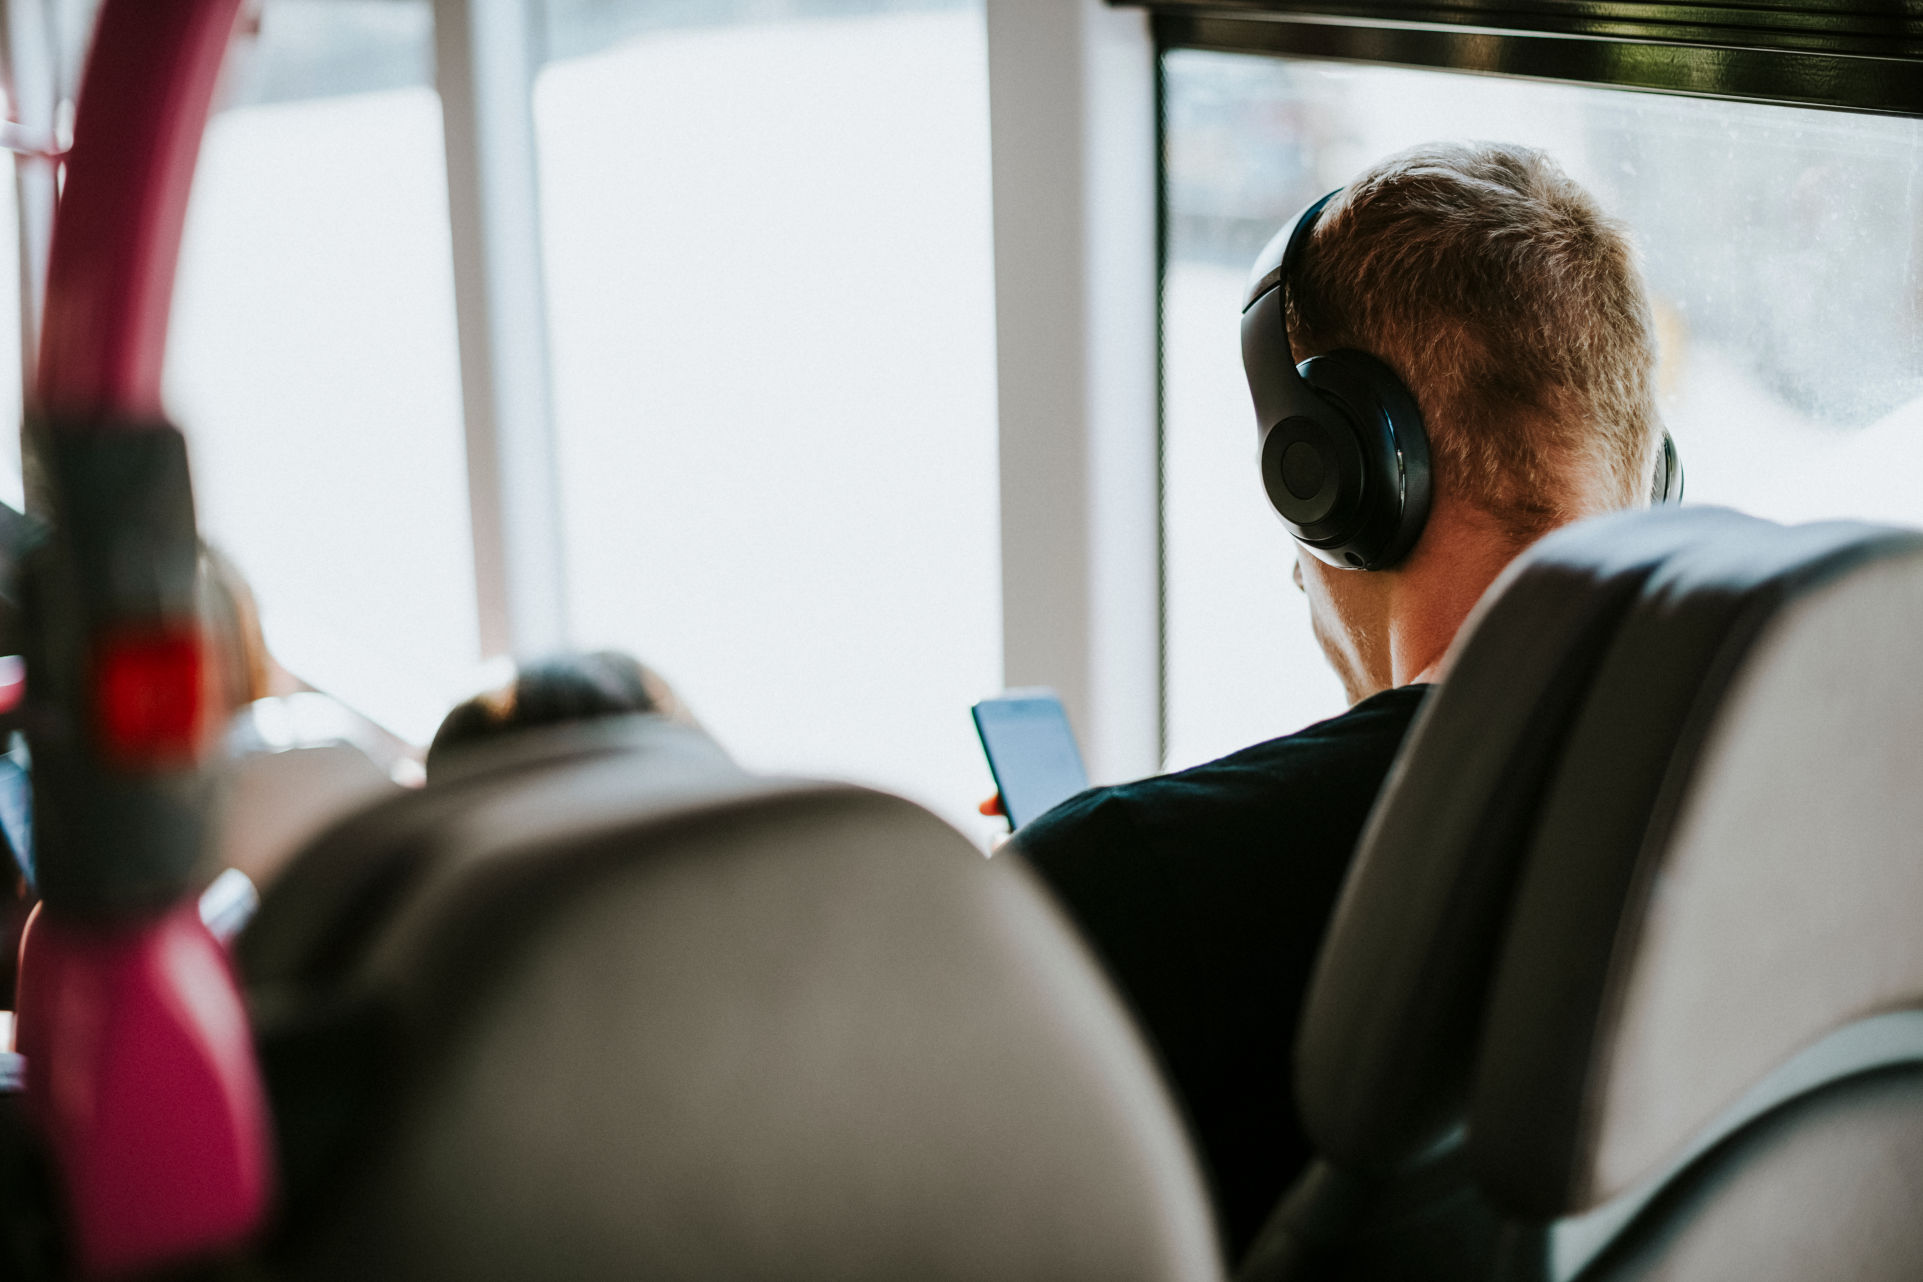 Man listening to a music on a bus